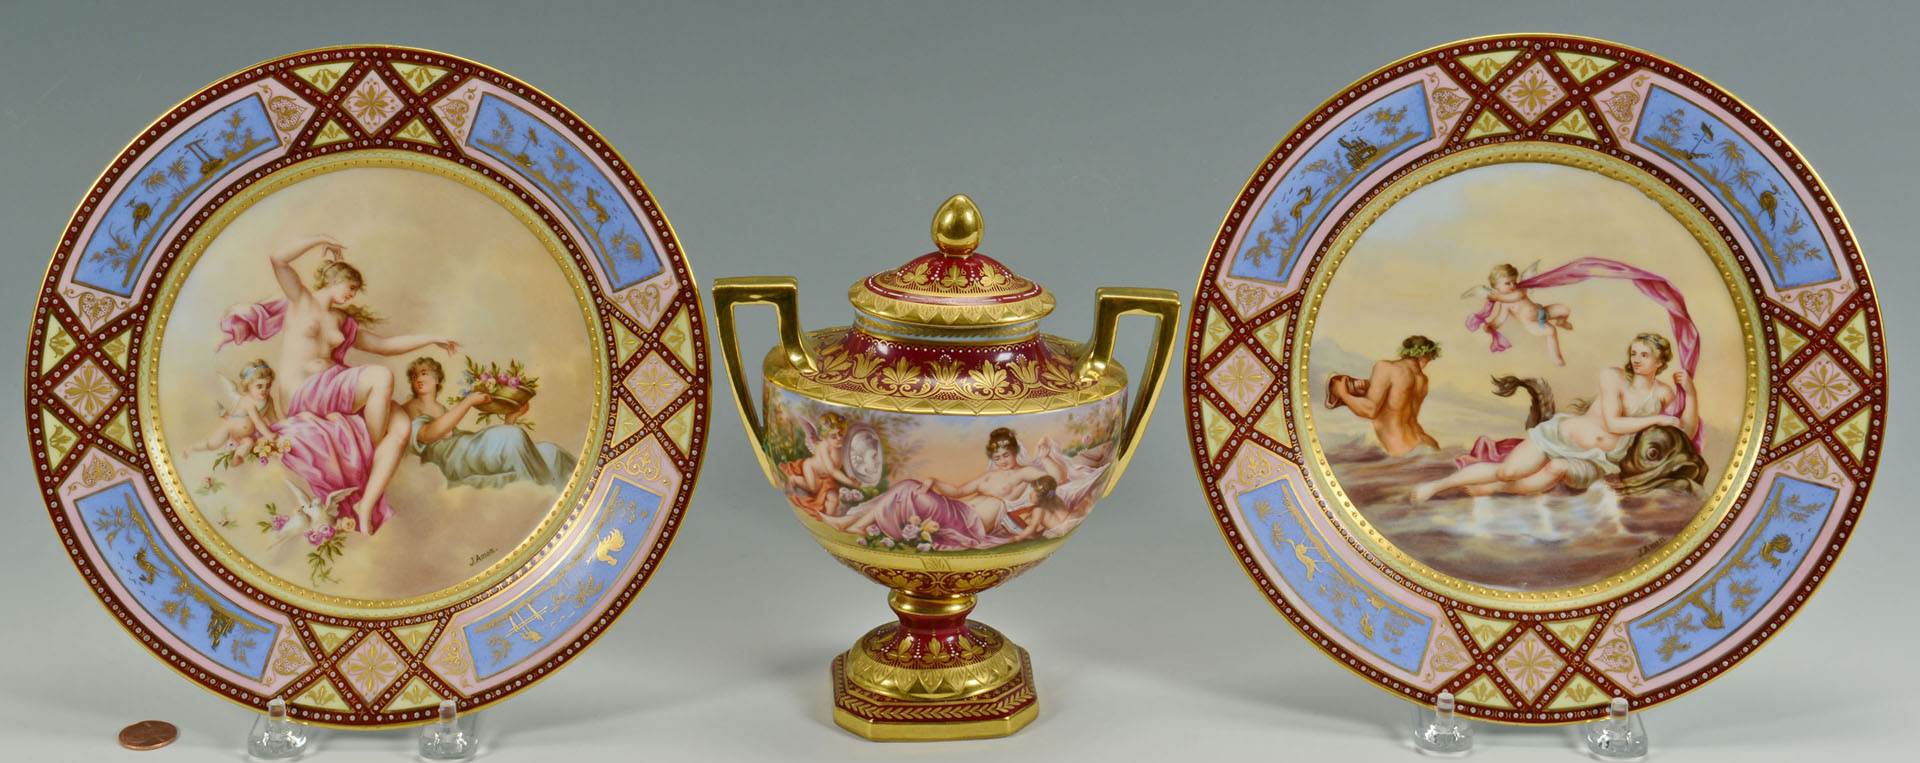 Royal Vienna Classical Nudes Urn & Plates, 3